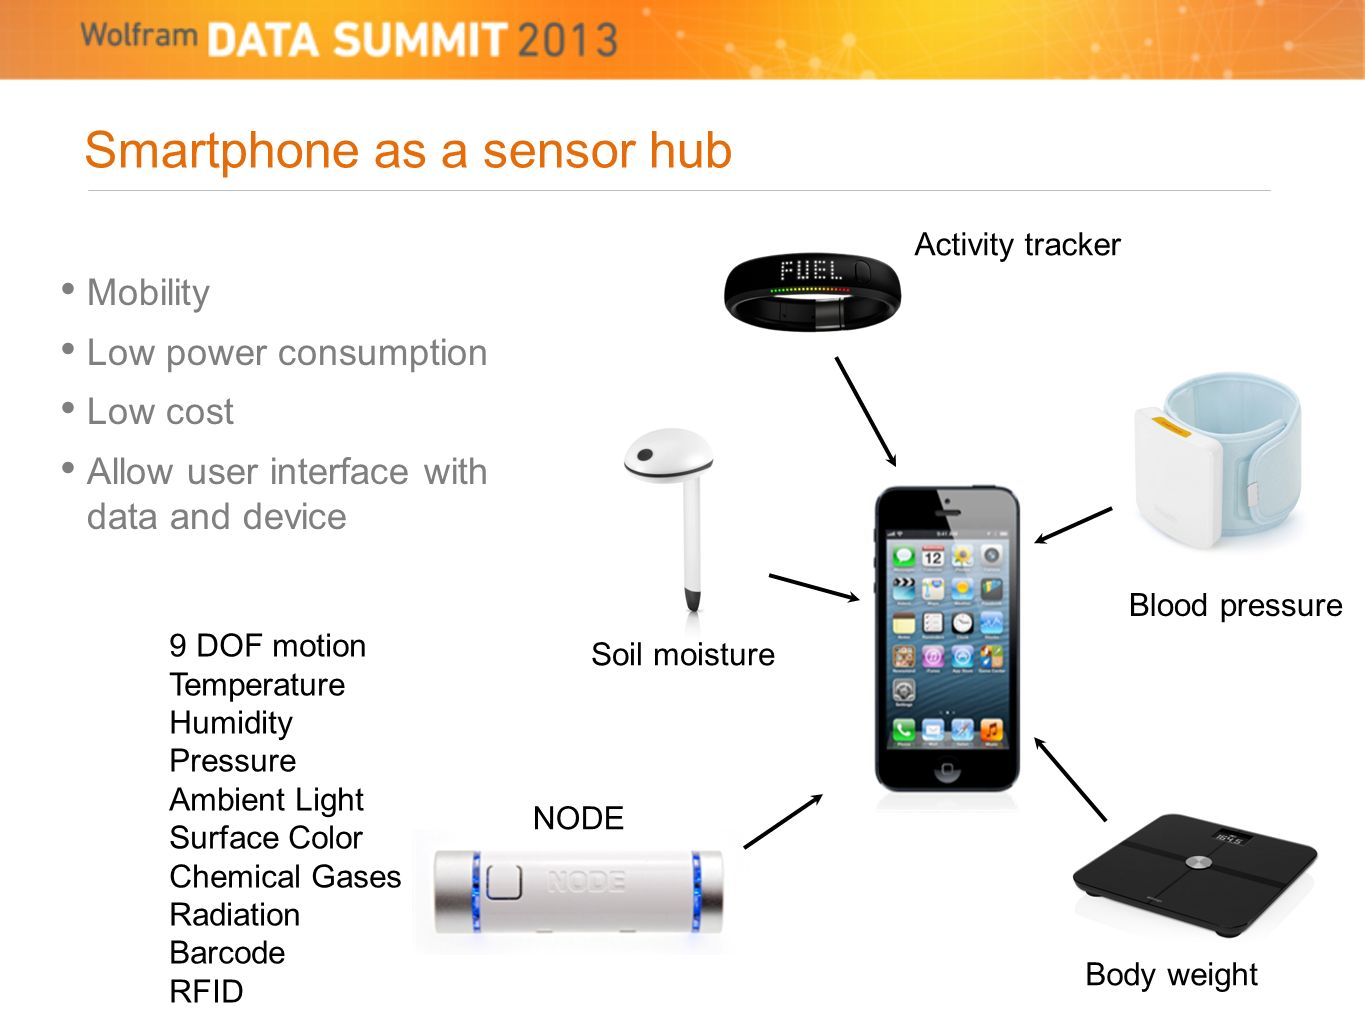 Smartphone as a sensor hub Mobility Low power consumption Low cost Allow user interface with data and device Activity tracker Soil moisture Body weight Blood pressure NODE 9 DOF motion Temperature Humidity Pressure Ambient Light Surface Color Chemical Gases Radiation Barcode RFID